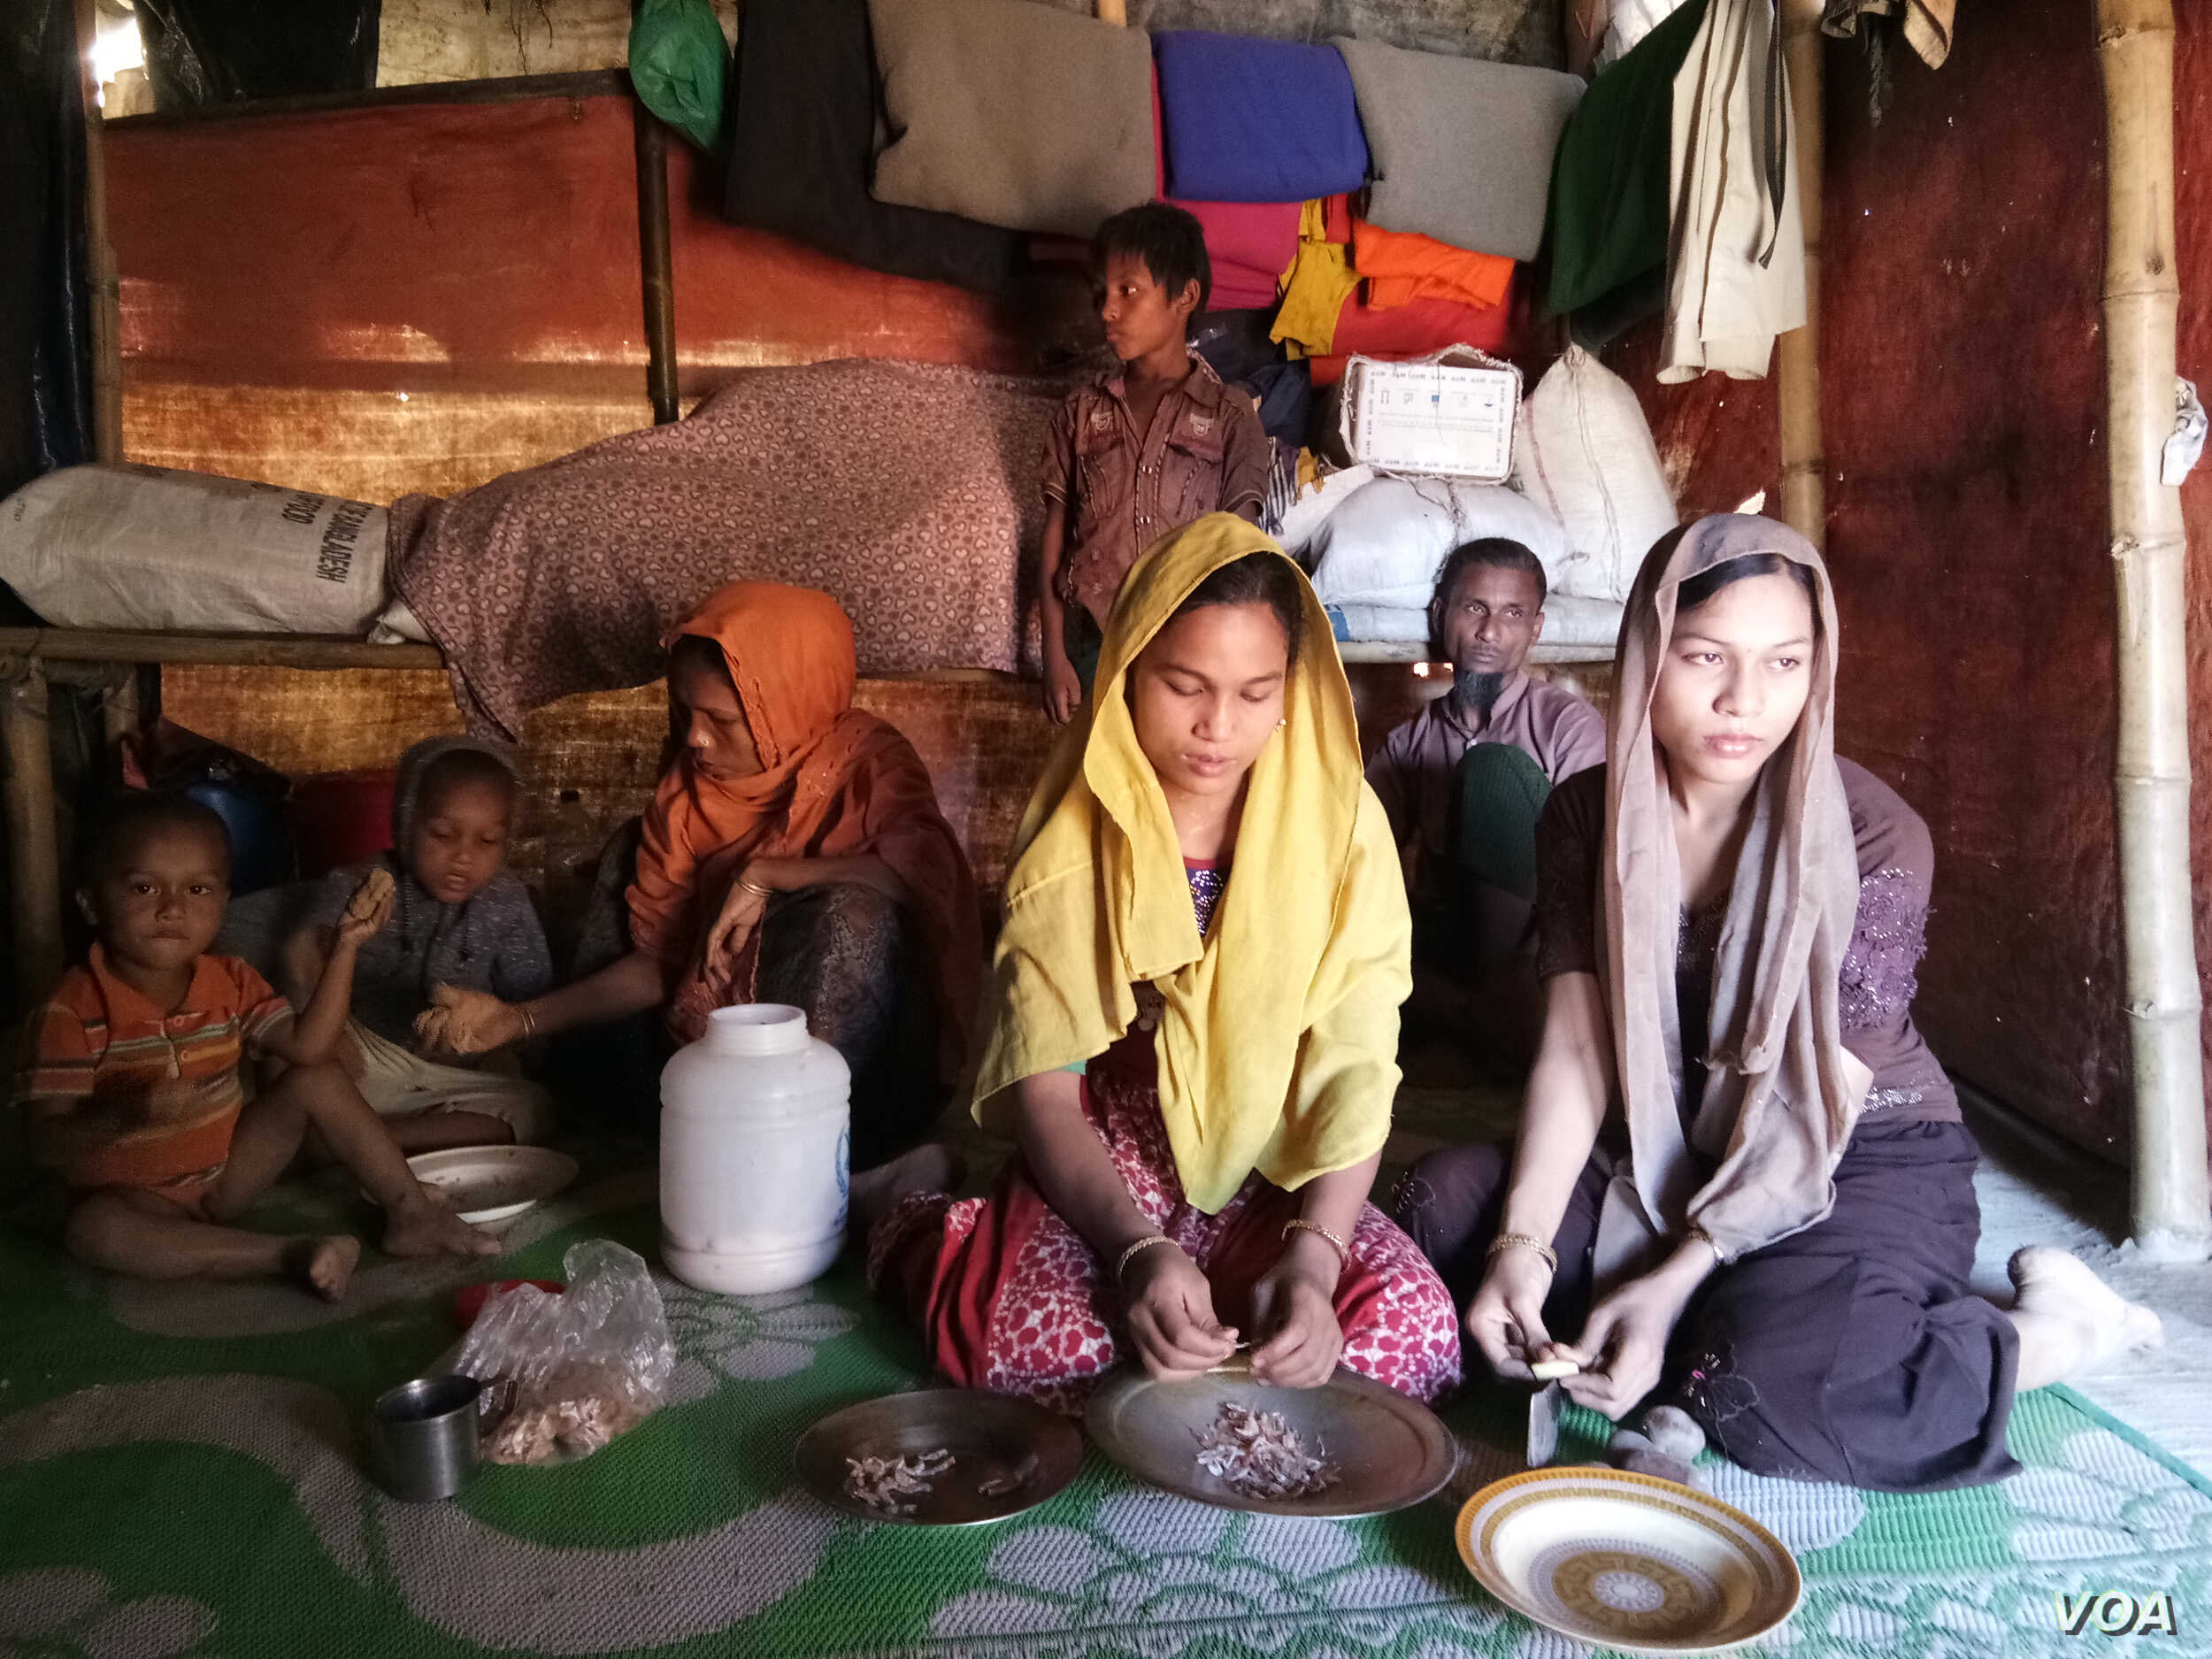 Noor Ankis, the mother of Rohingya sisters Johora (in yellow scarf), 12, and Jannatara, 14, finds it difficult to feed her family with the food rations she gets and plans to marry off her underage daughters as soon as possible. (Photos by Noor Hossai...